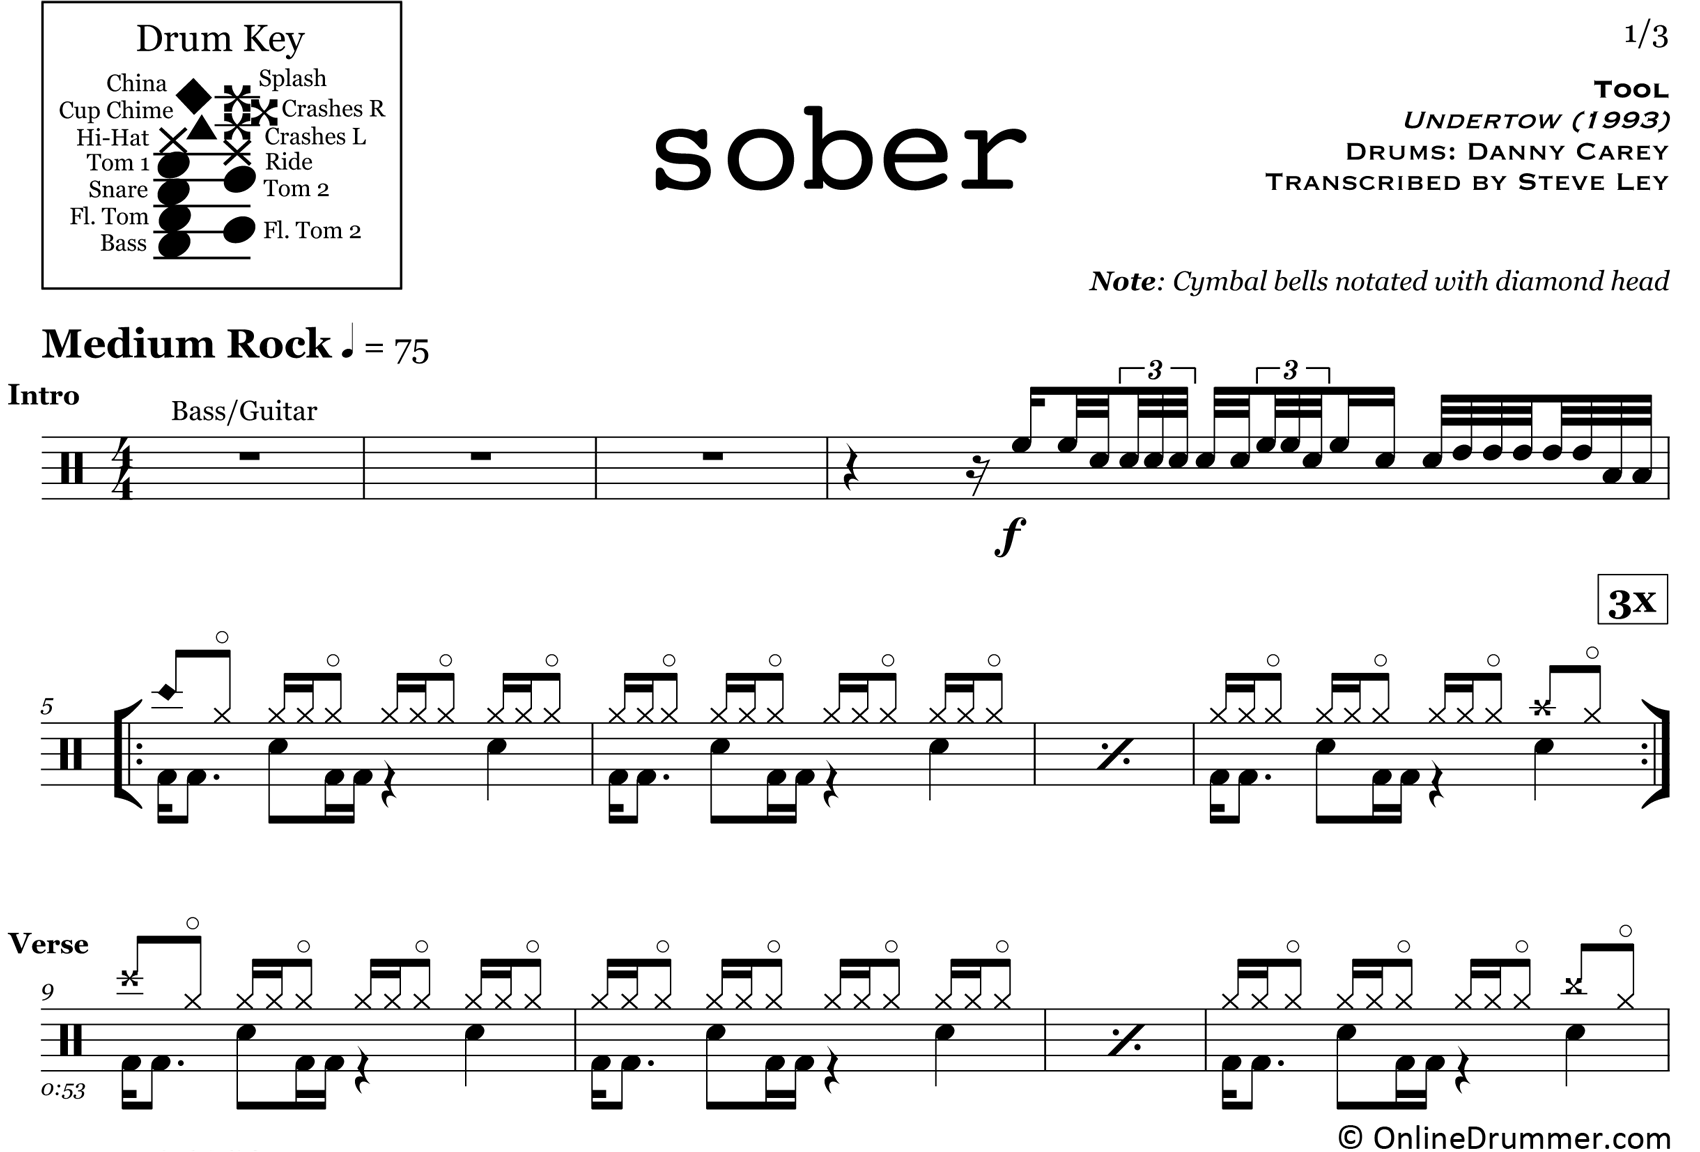 Sober - Tool - Drum Sheet Music